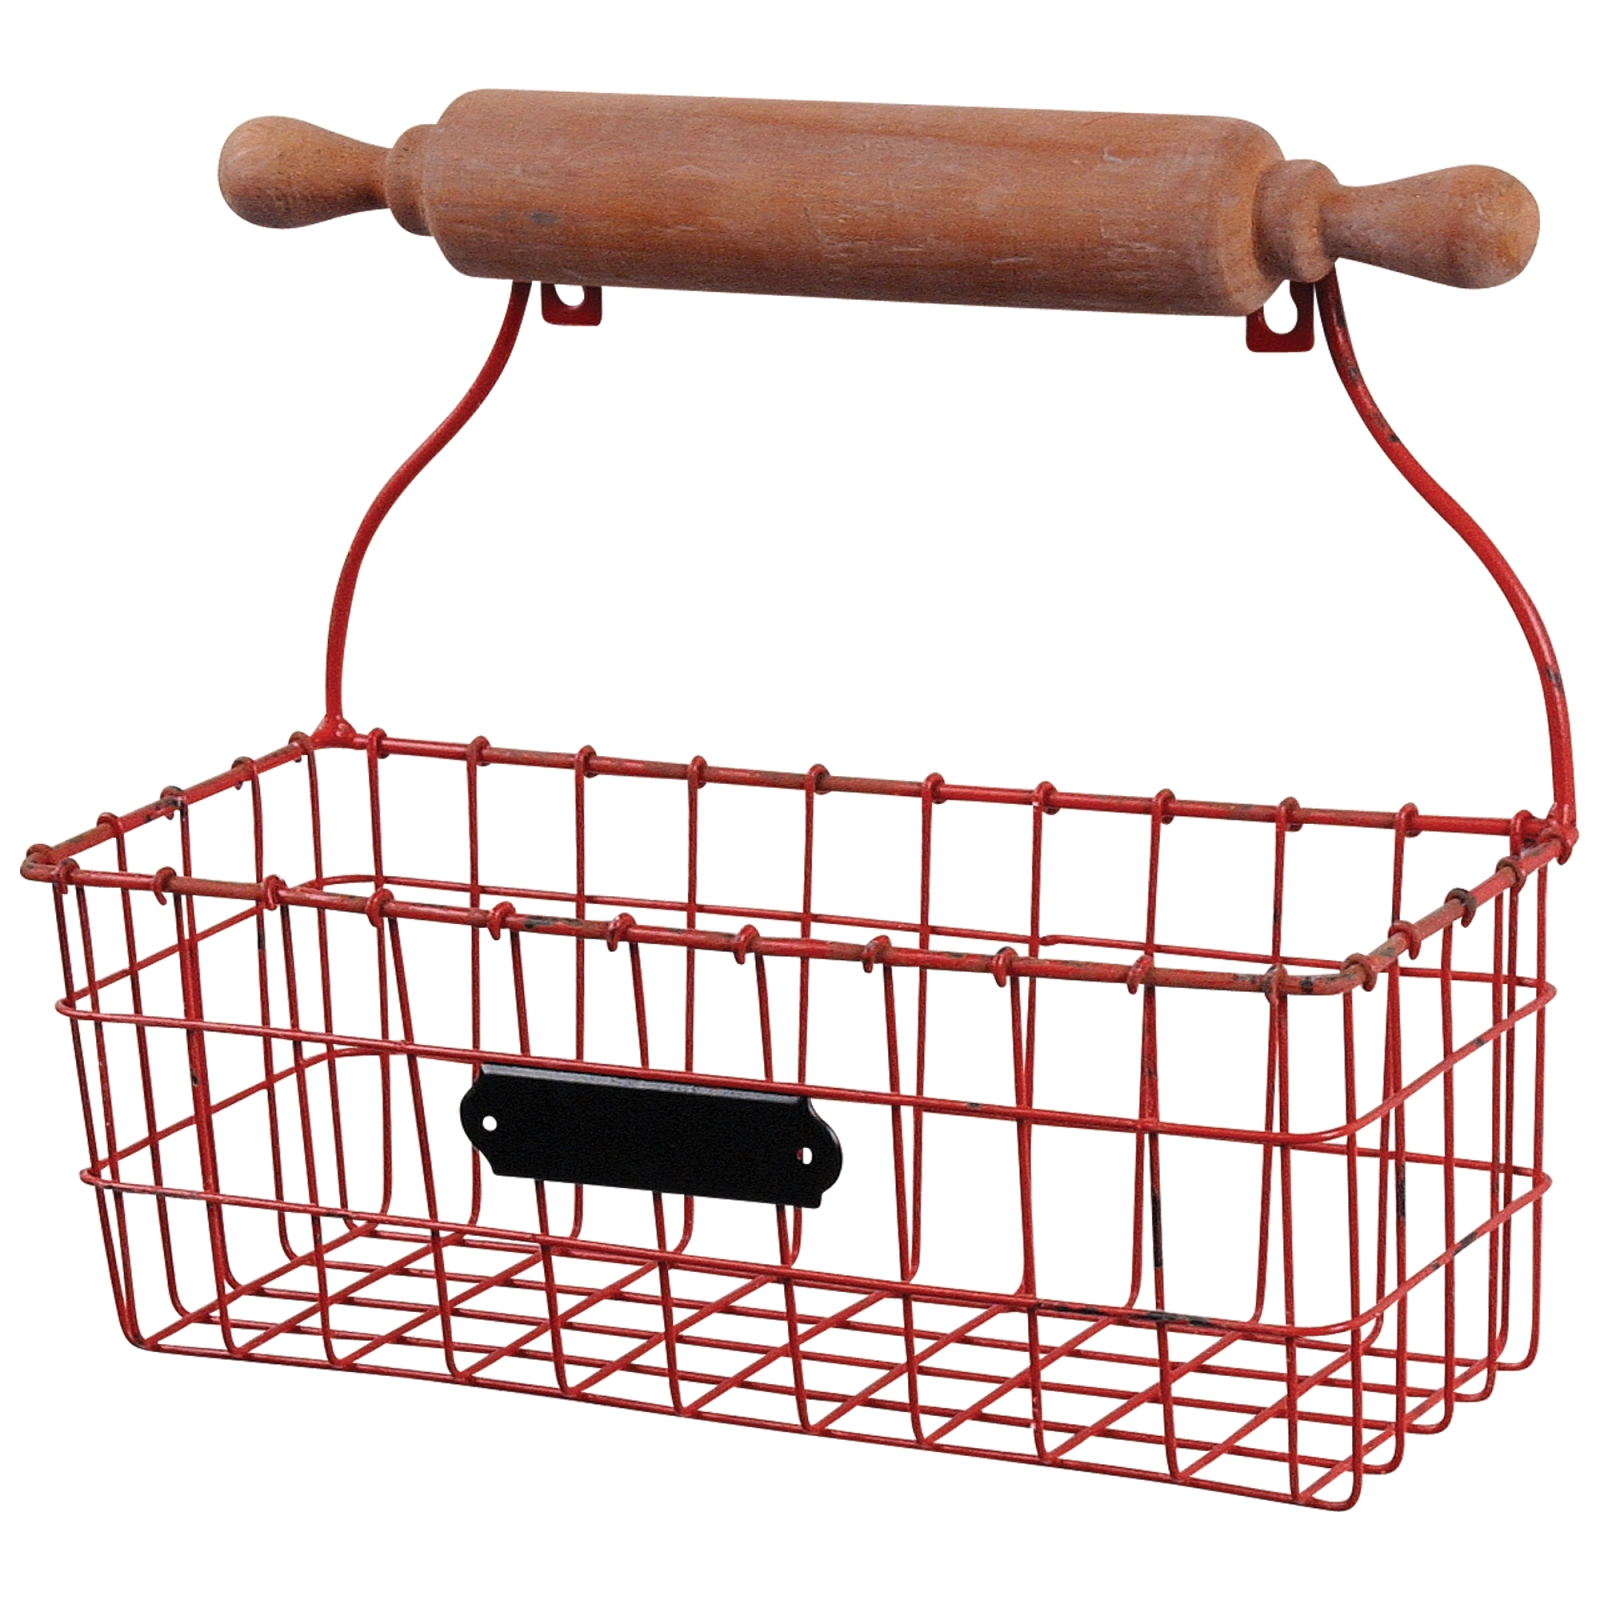 Details About Baker 39 S Rolling Pin Red Wire Basket Kitchen Wall Storage